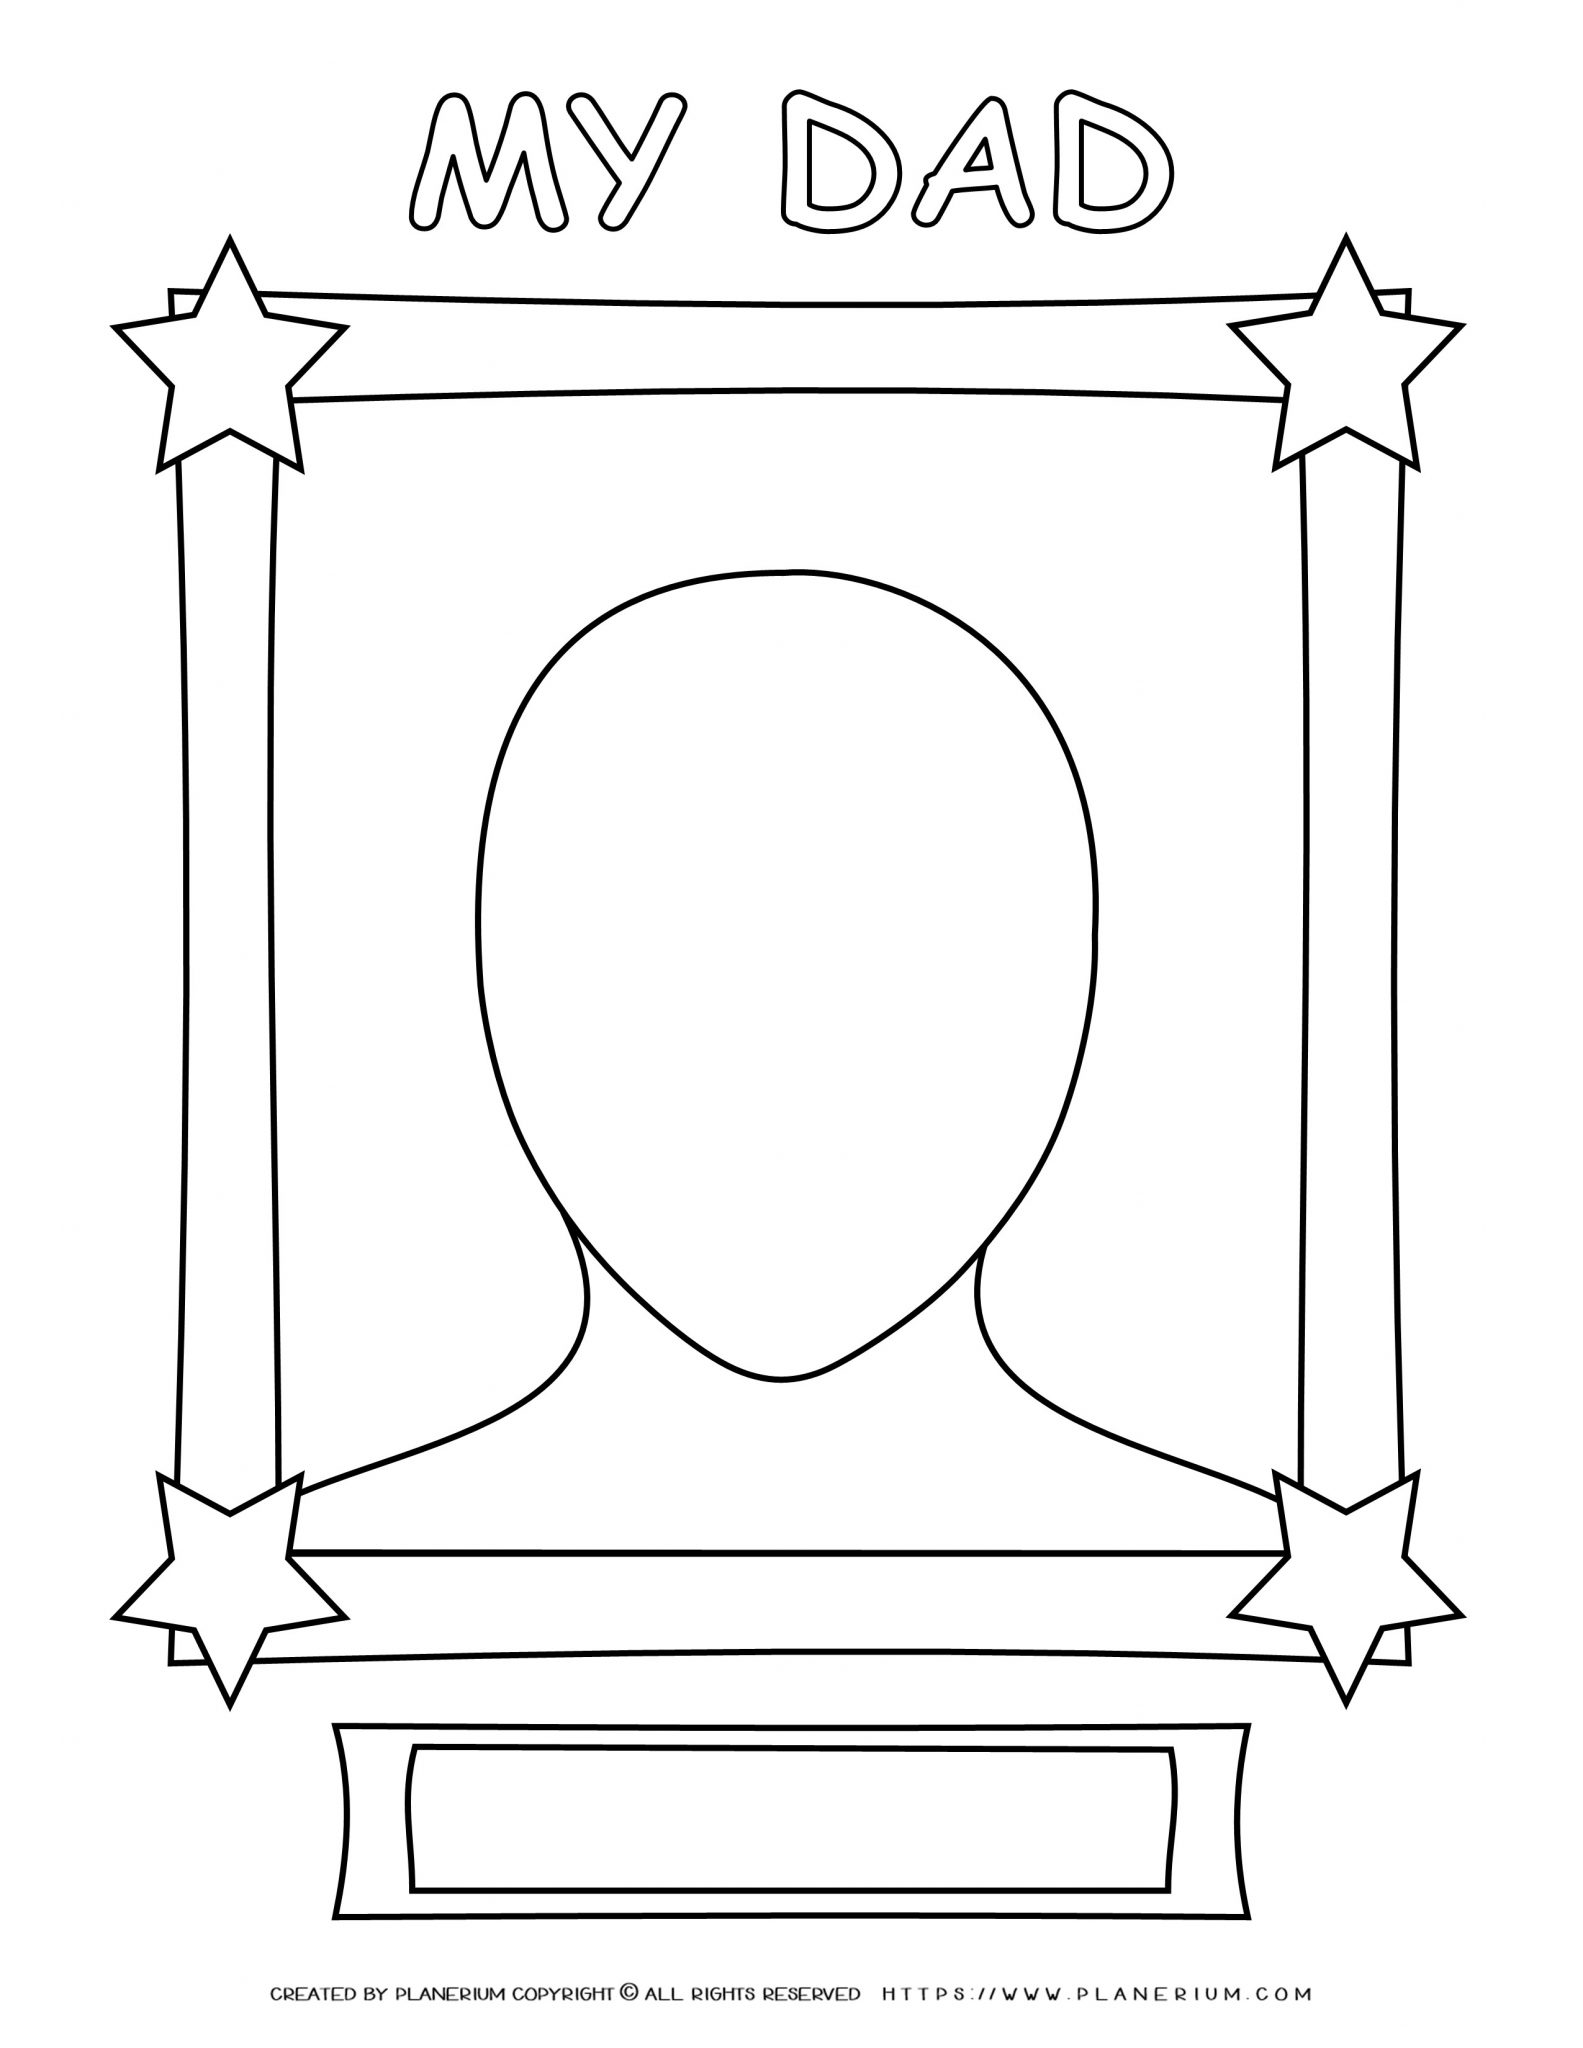 Father's Day - Coloring Page - My Dad